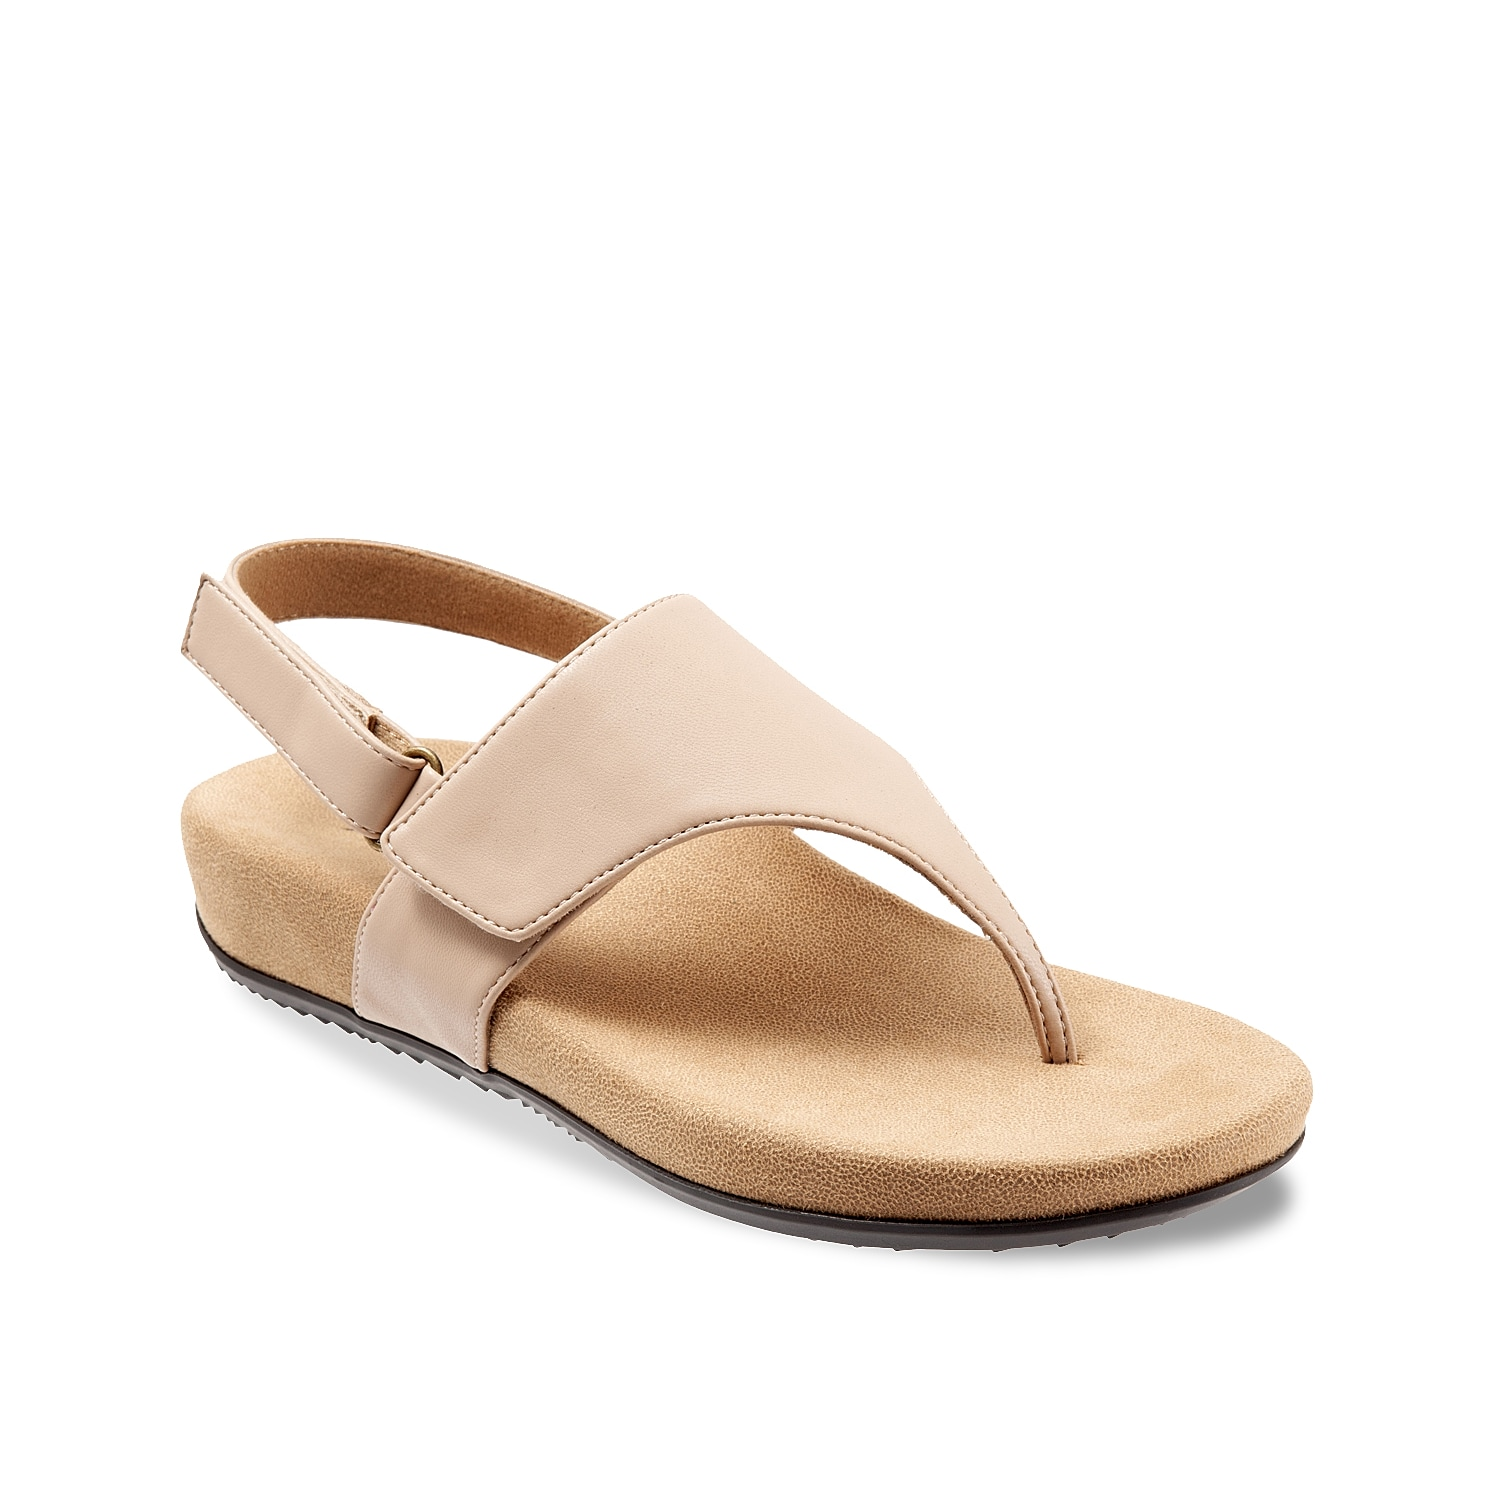 A supportive wedge heel and memory foam cushioning make the Paloma sandal a comfortable edition to your wardrobe. These slingbacks will complement jeans or dresses for any occasion.